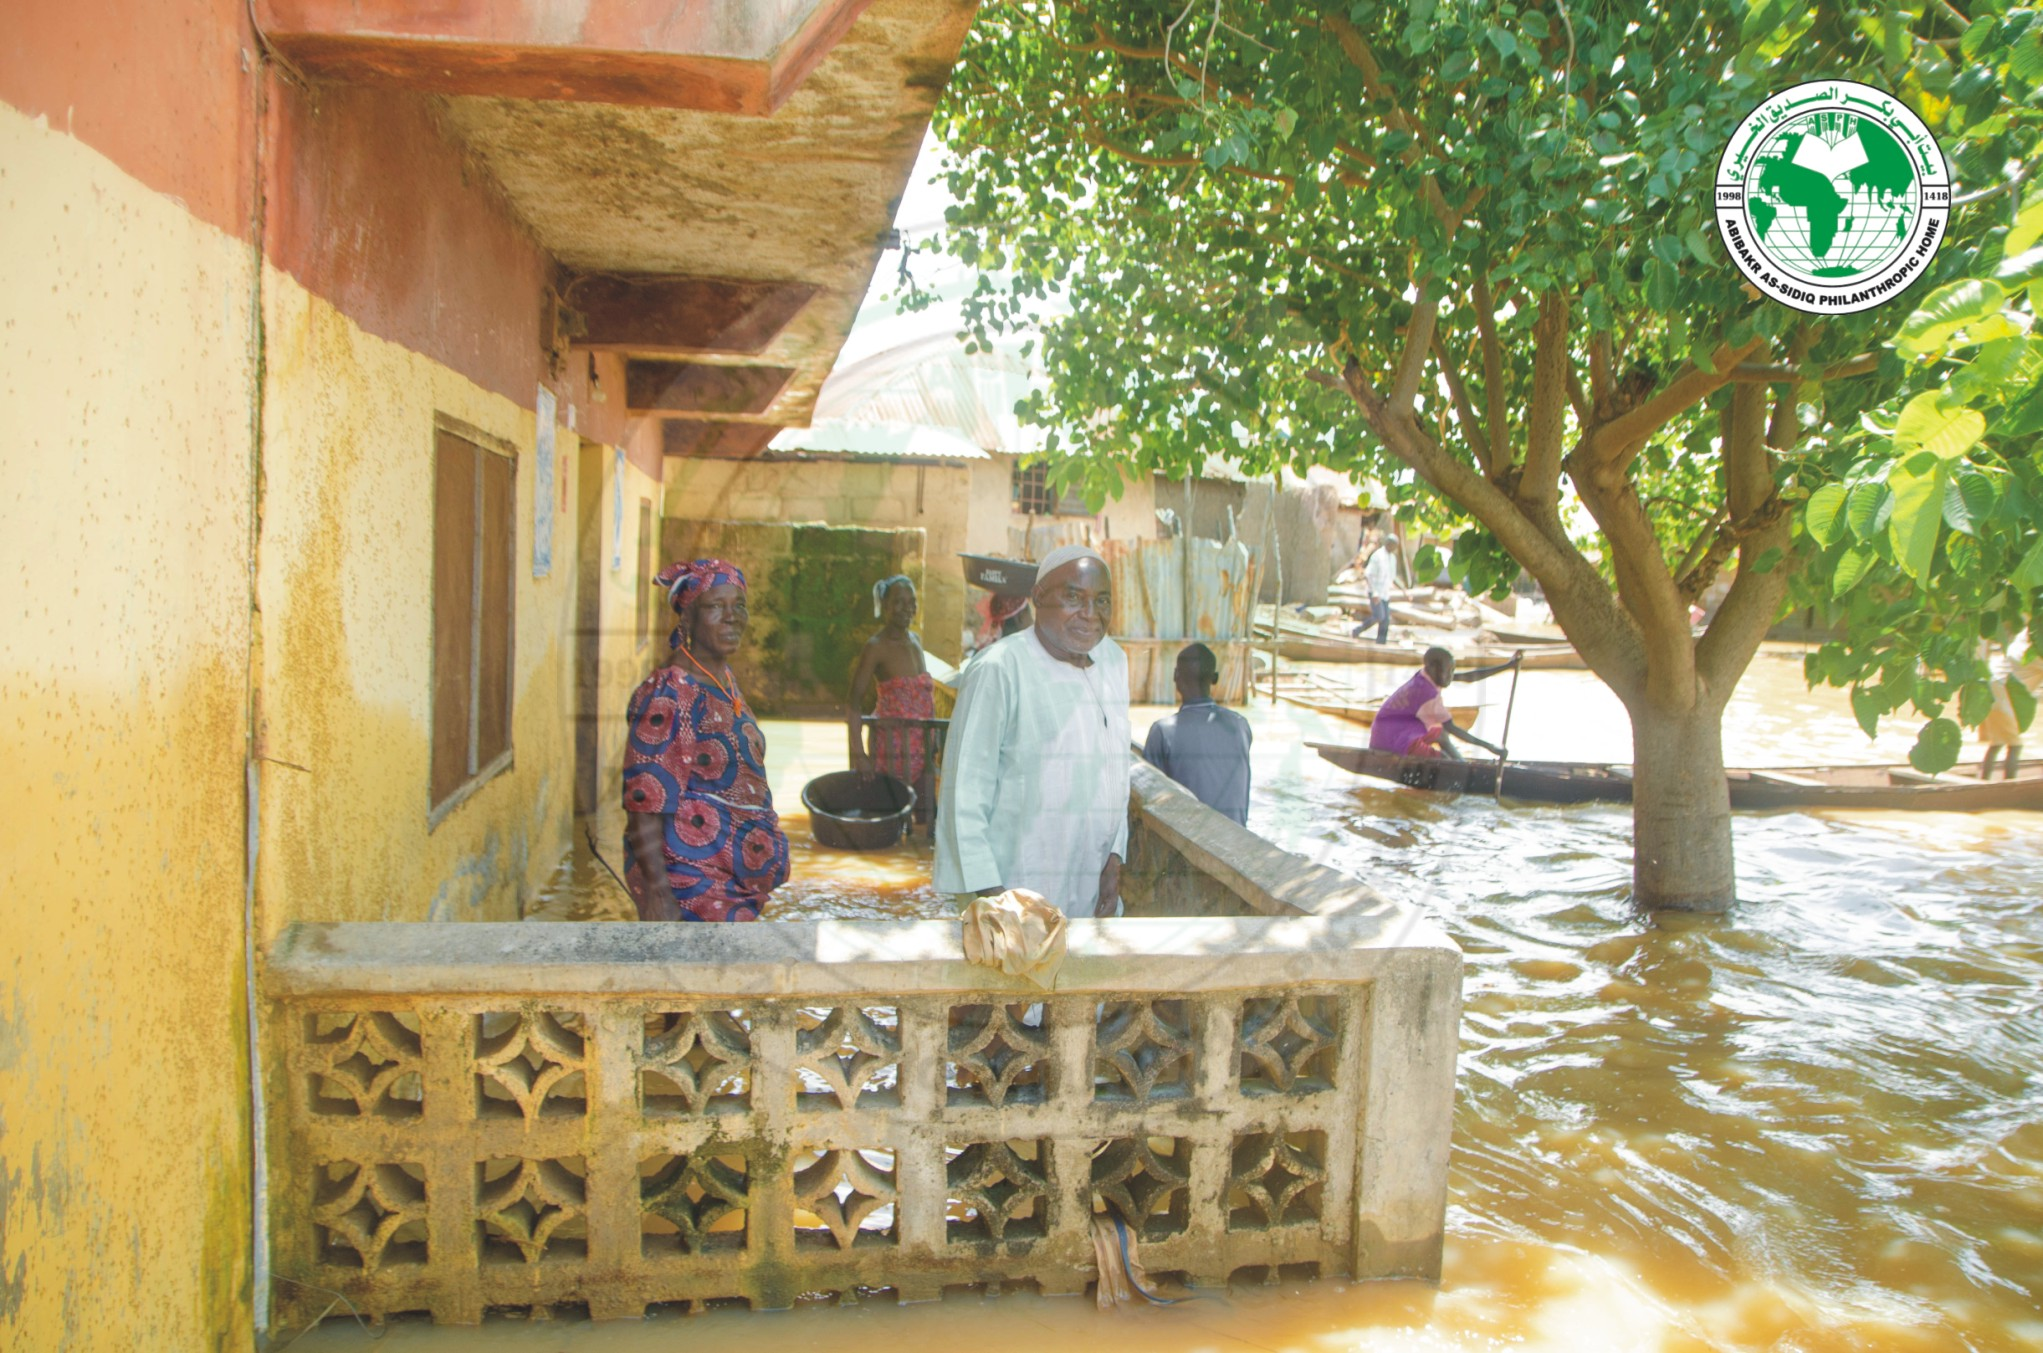 Abibakr As-Sidiq Philanthropic Home team designated field team conductiong a physical assessment on communities hit by the recent heavy rainstorm and flood disasters in Kwara State